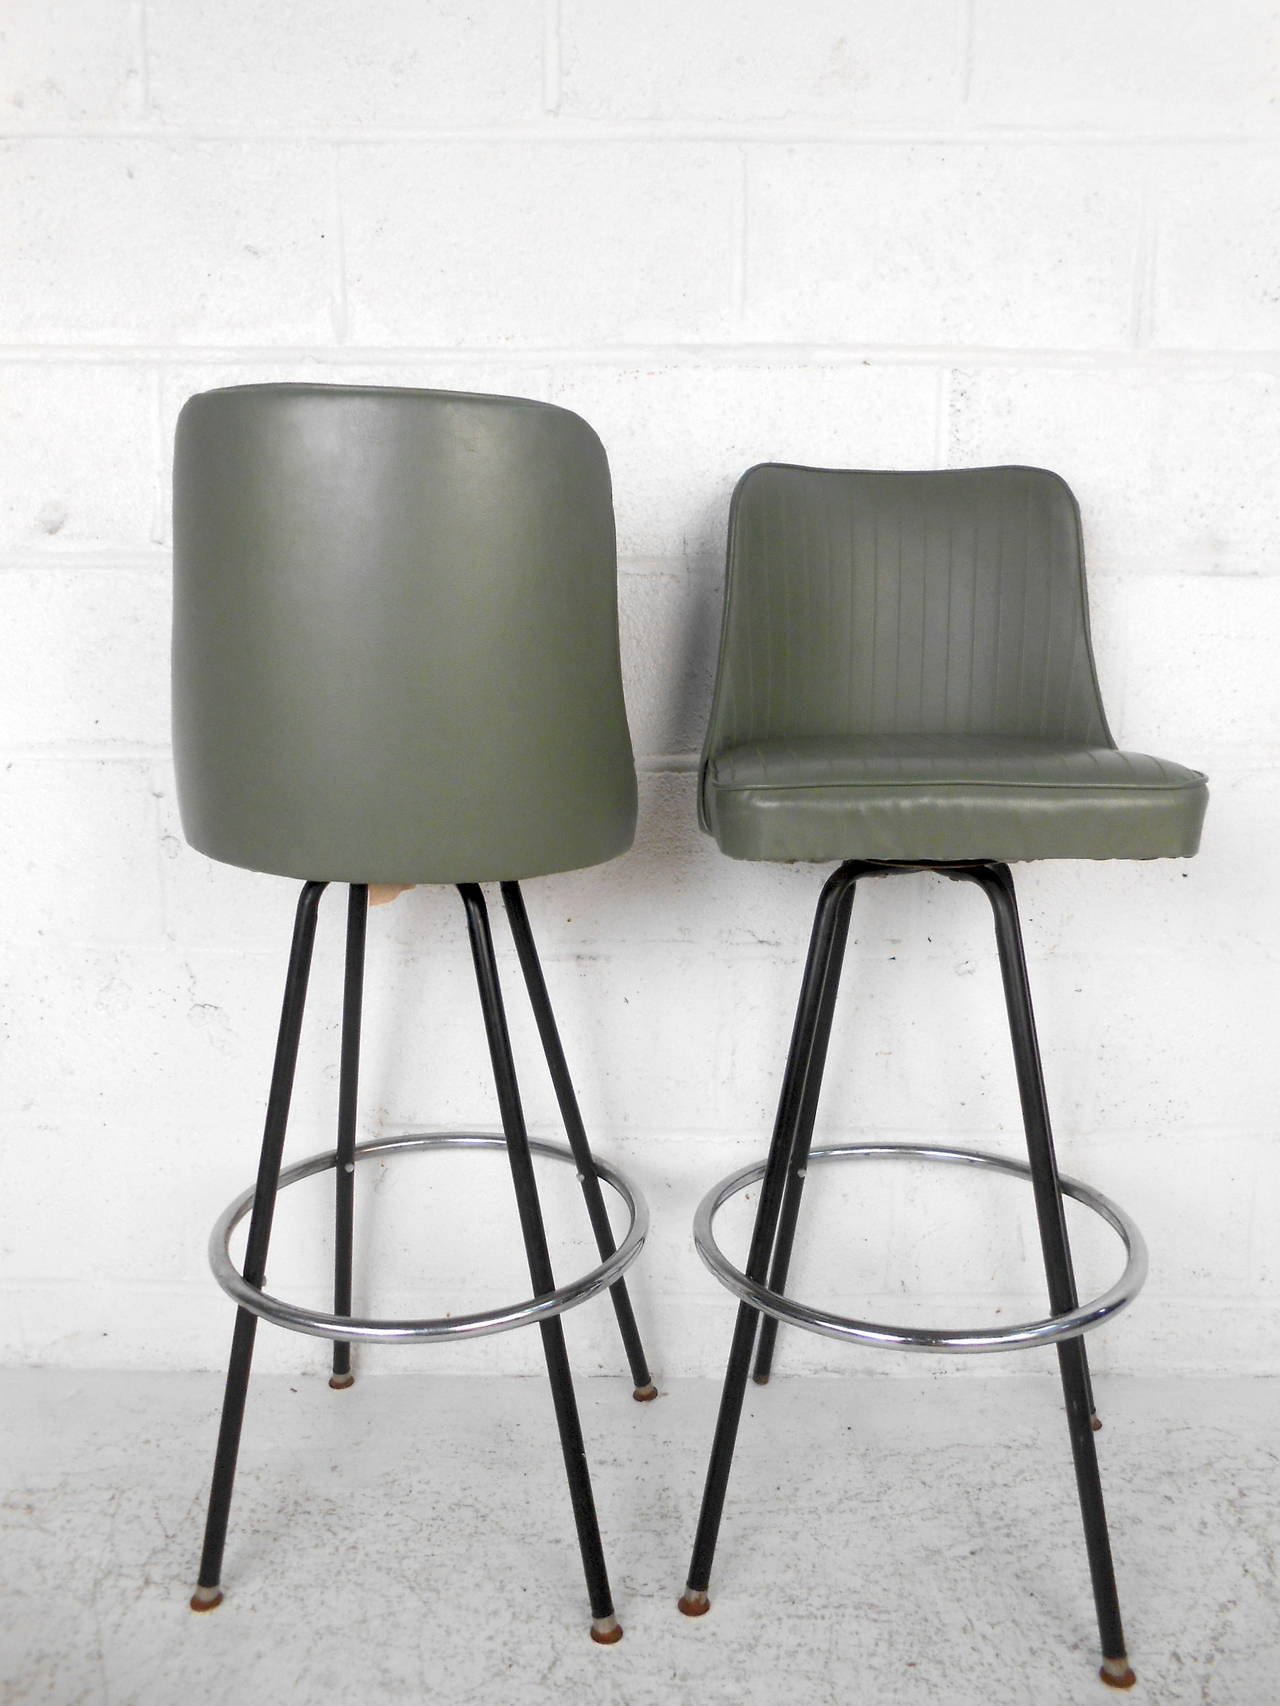 Mid century modern bar stools by atlas for sale at 1stdibs